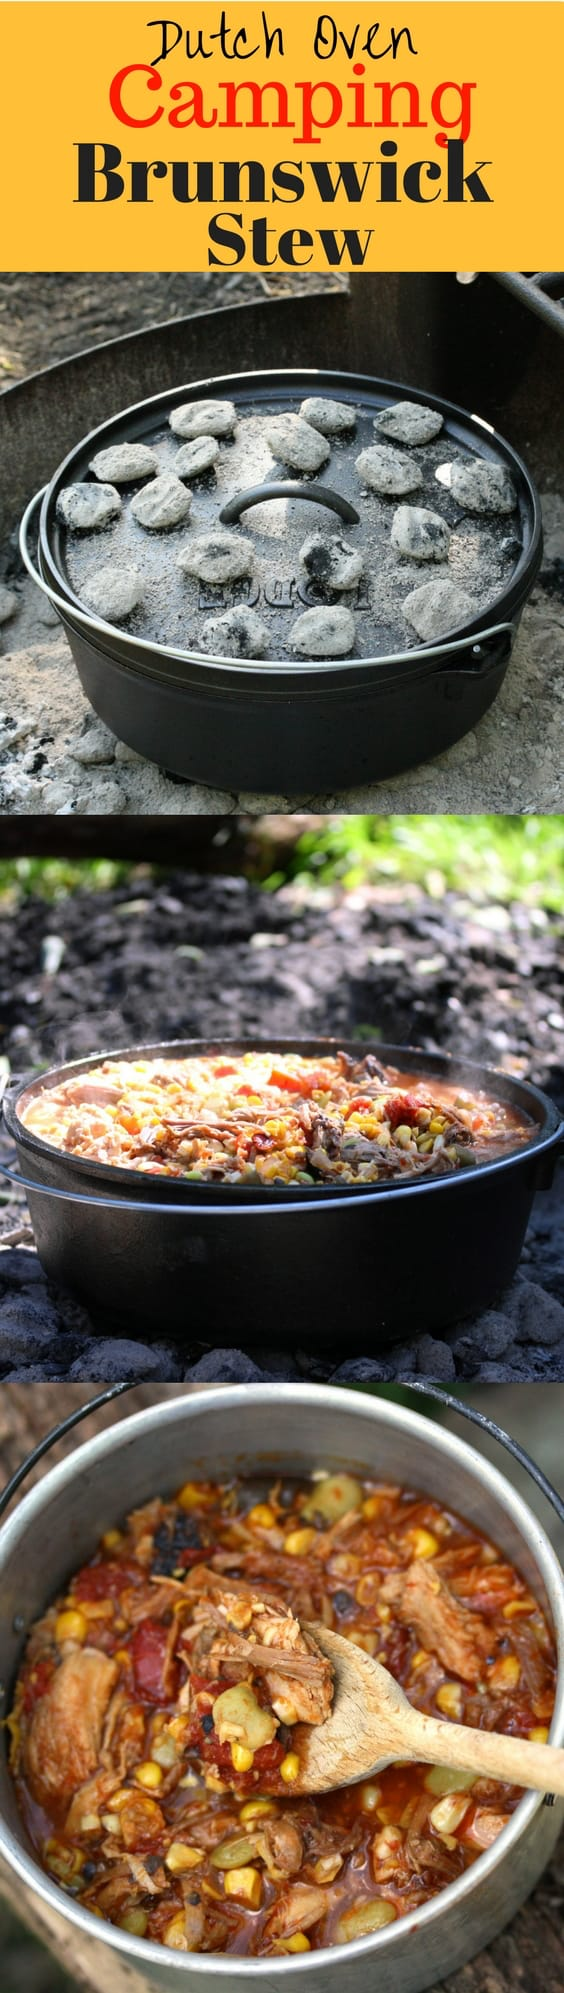 Brunswick Stew - a delicious tomato based stew containing lima beans, okra, corn and other vegetables, plus various types of smoked meats. Perfect cooked over hot coals in a Lodge Dutch Oven after a fun day hiking and enjoying the great outdoors! Perfect camping food! www.savingdessert.com